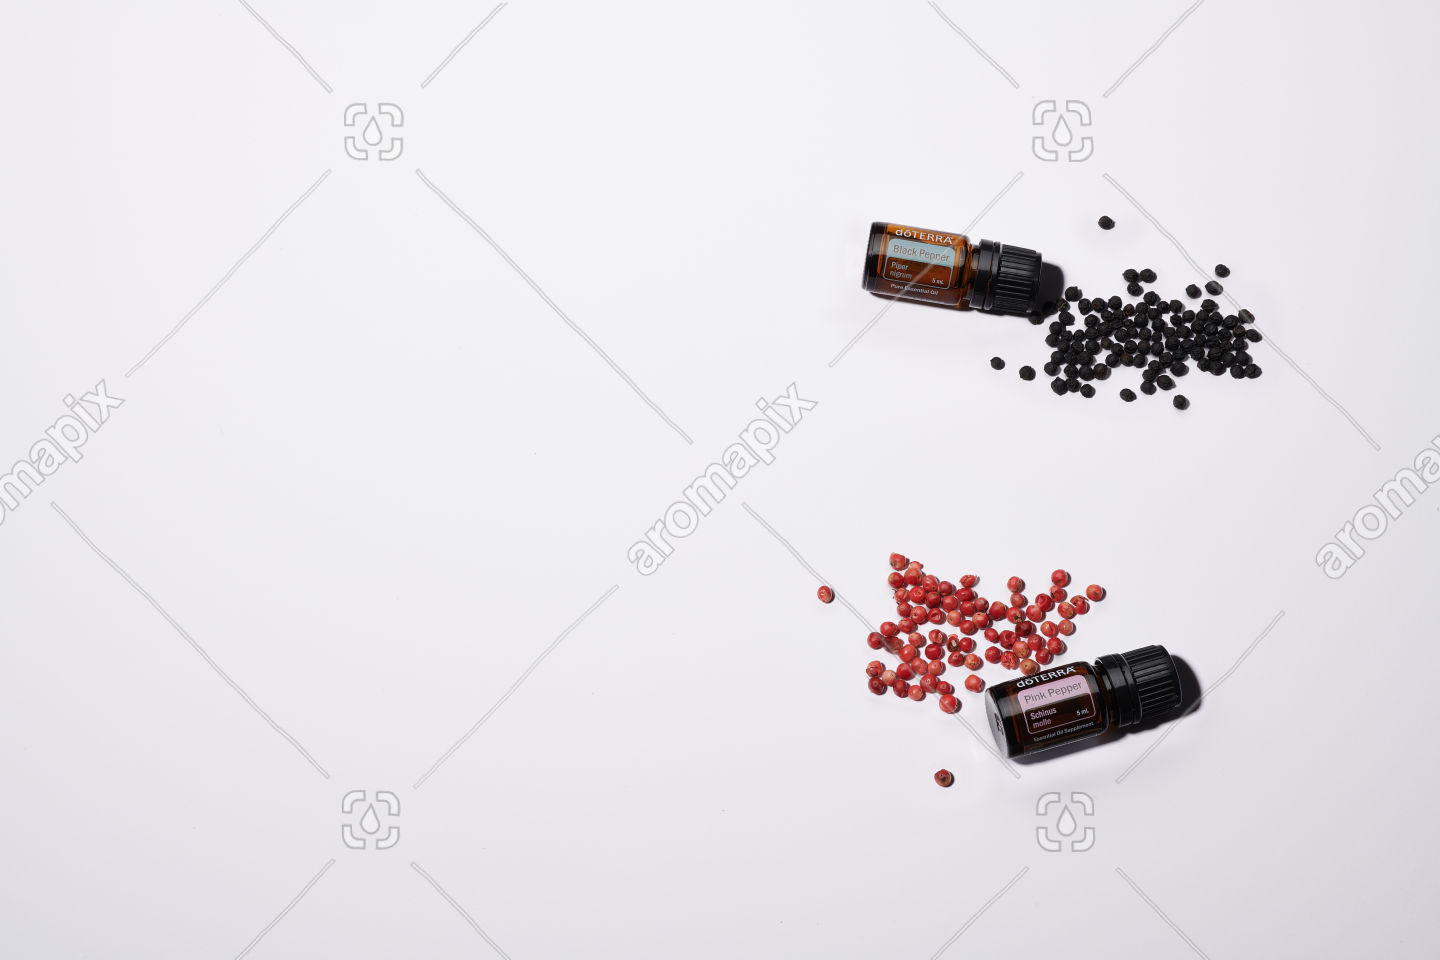 doTERRA Black Pepper and Pink Pepper with peppercorns on white background